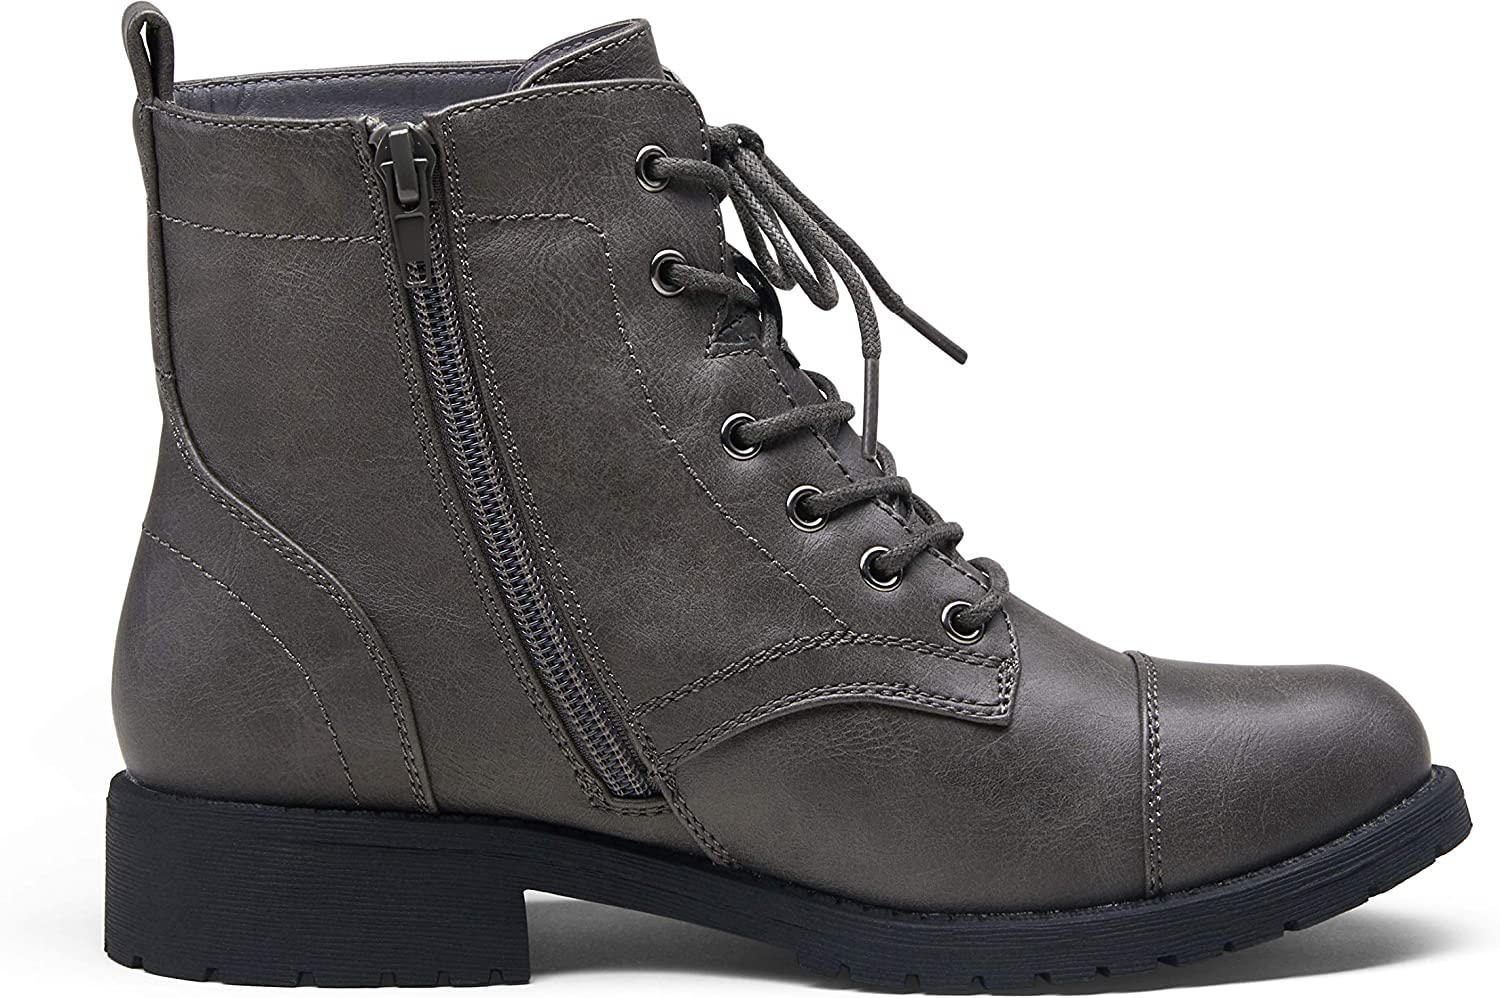 VEPOSE Womens Fashion Ankle Booties Combat Boots for Women